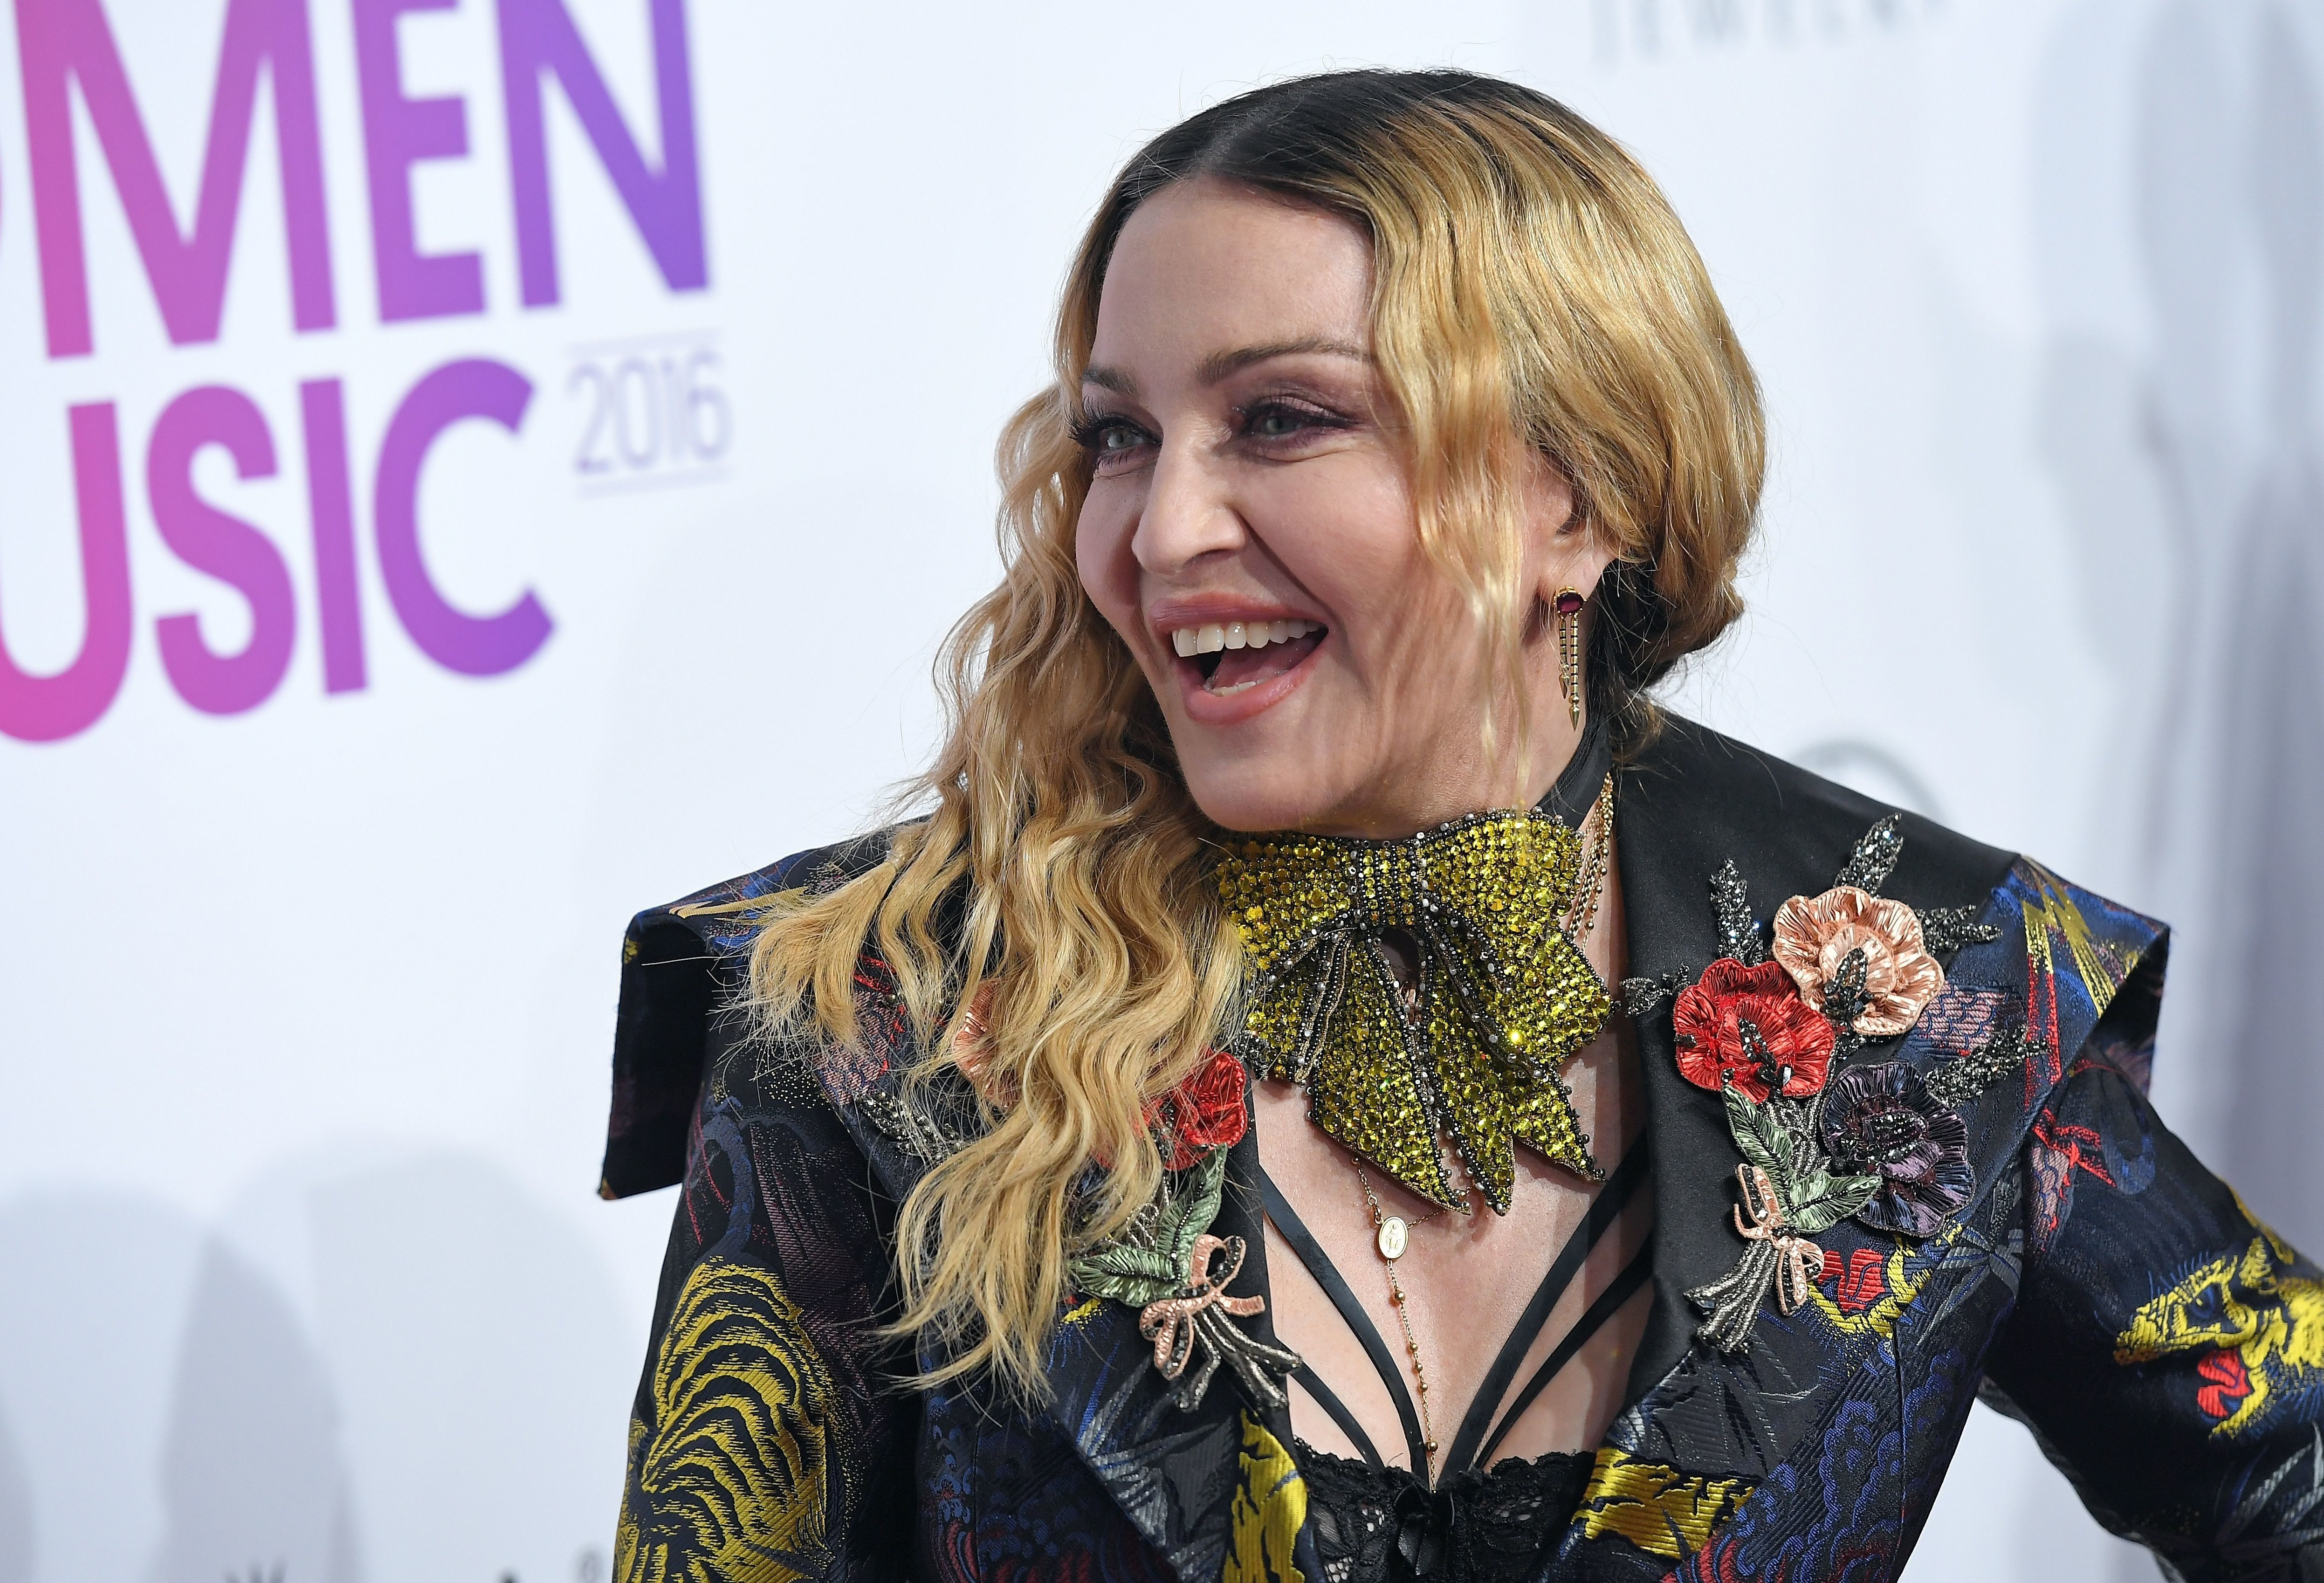 Madonna attends the Billboard Women in Music 2016 event on December 9, 2016 in New York City. / AFP / ANGELA WEISS        (Photo credit should read ANGELA WEISS/AFP/Getty Images)